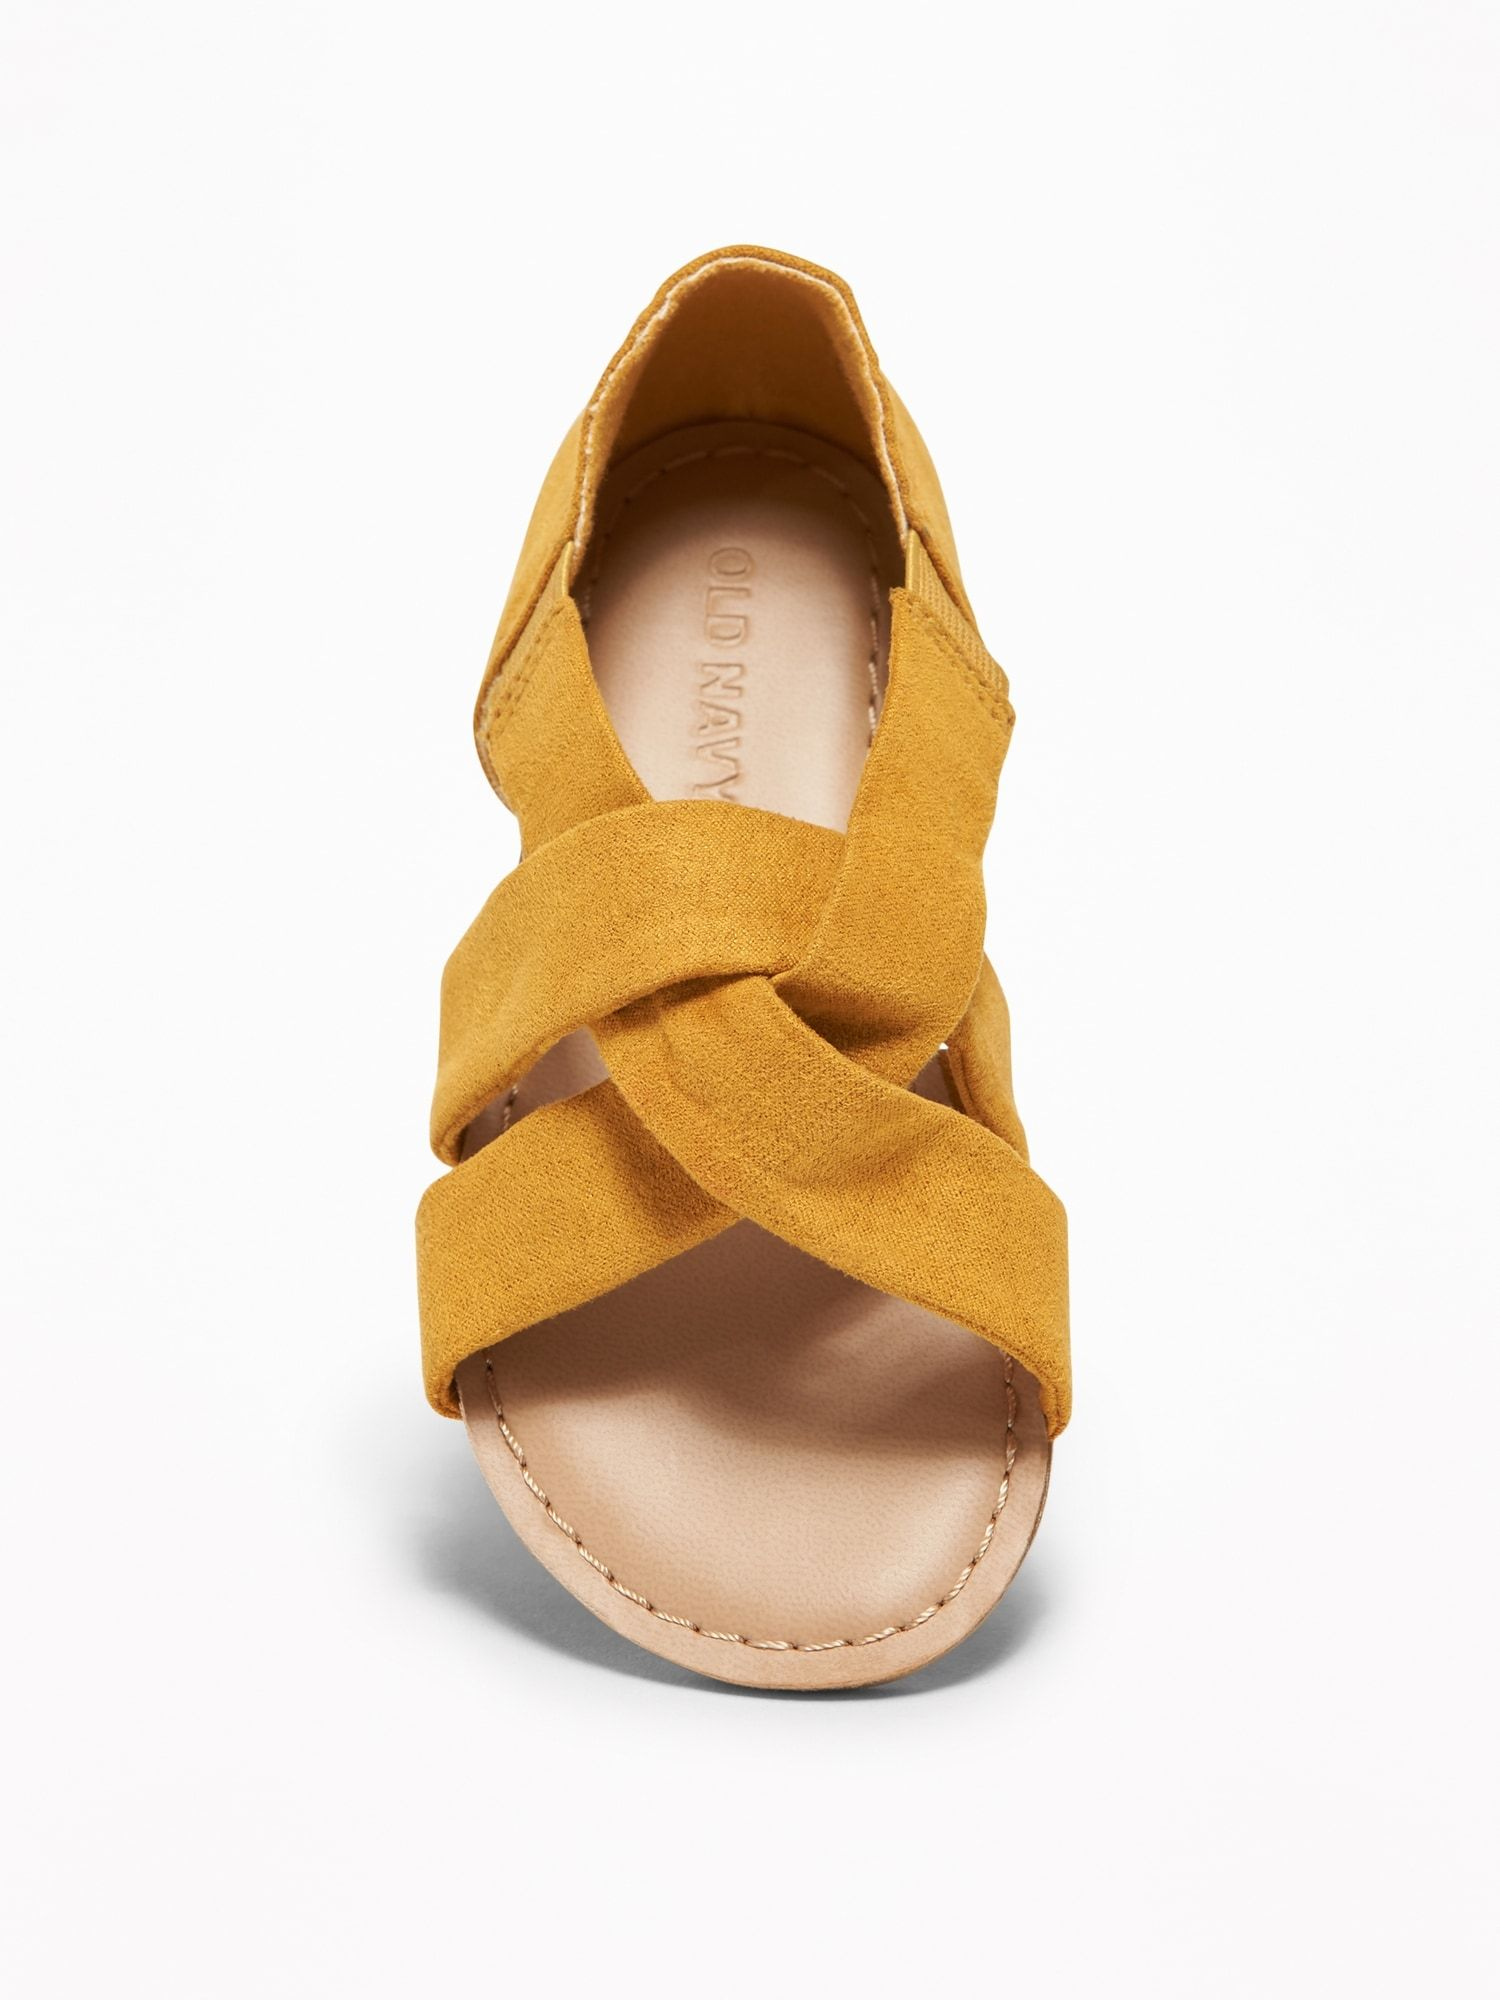 88f0d5c1efc Slouchy Faux-Suede Cross-Strap Sandals For Toddler Girls